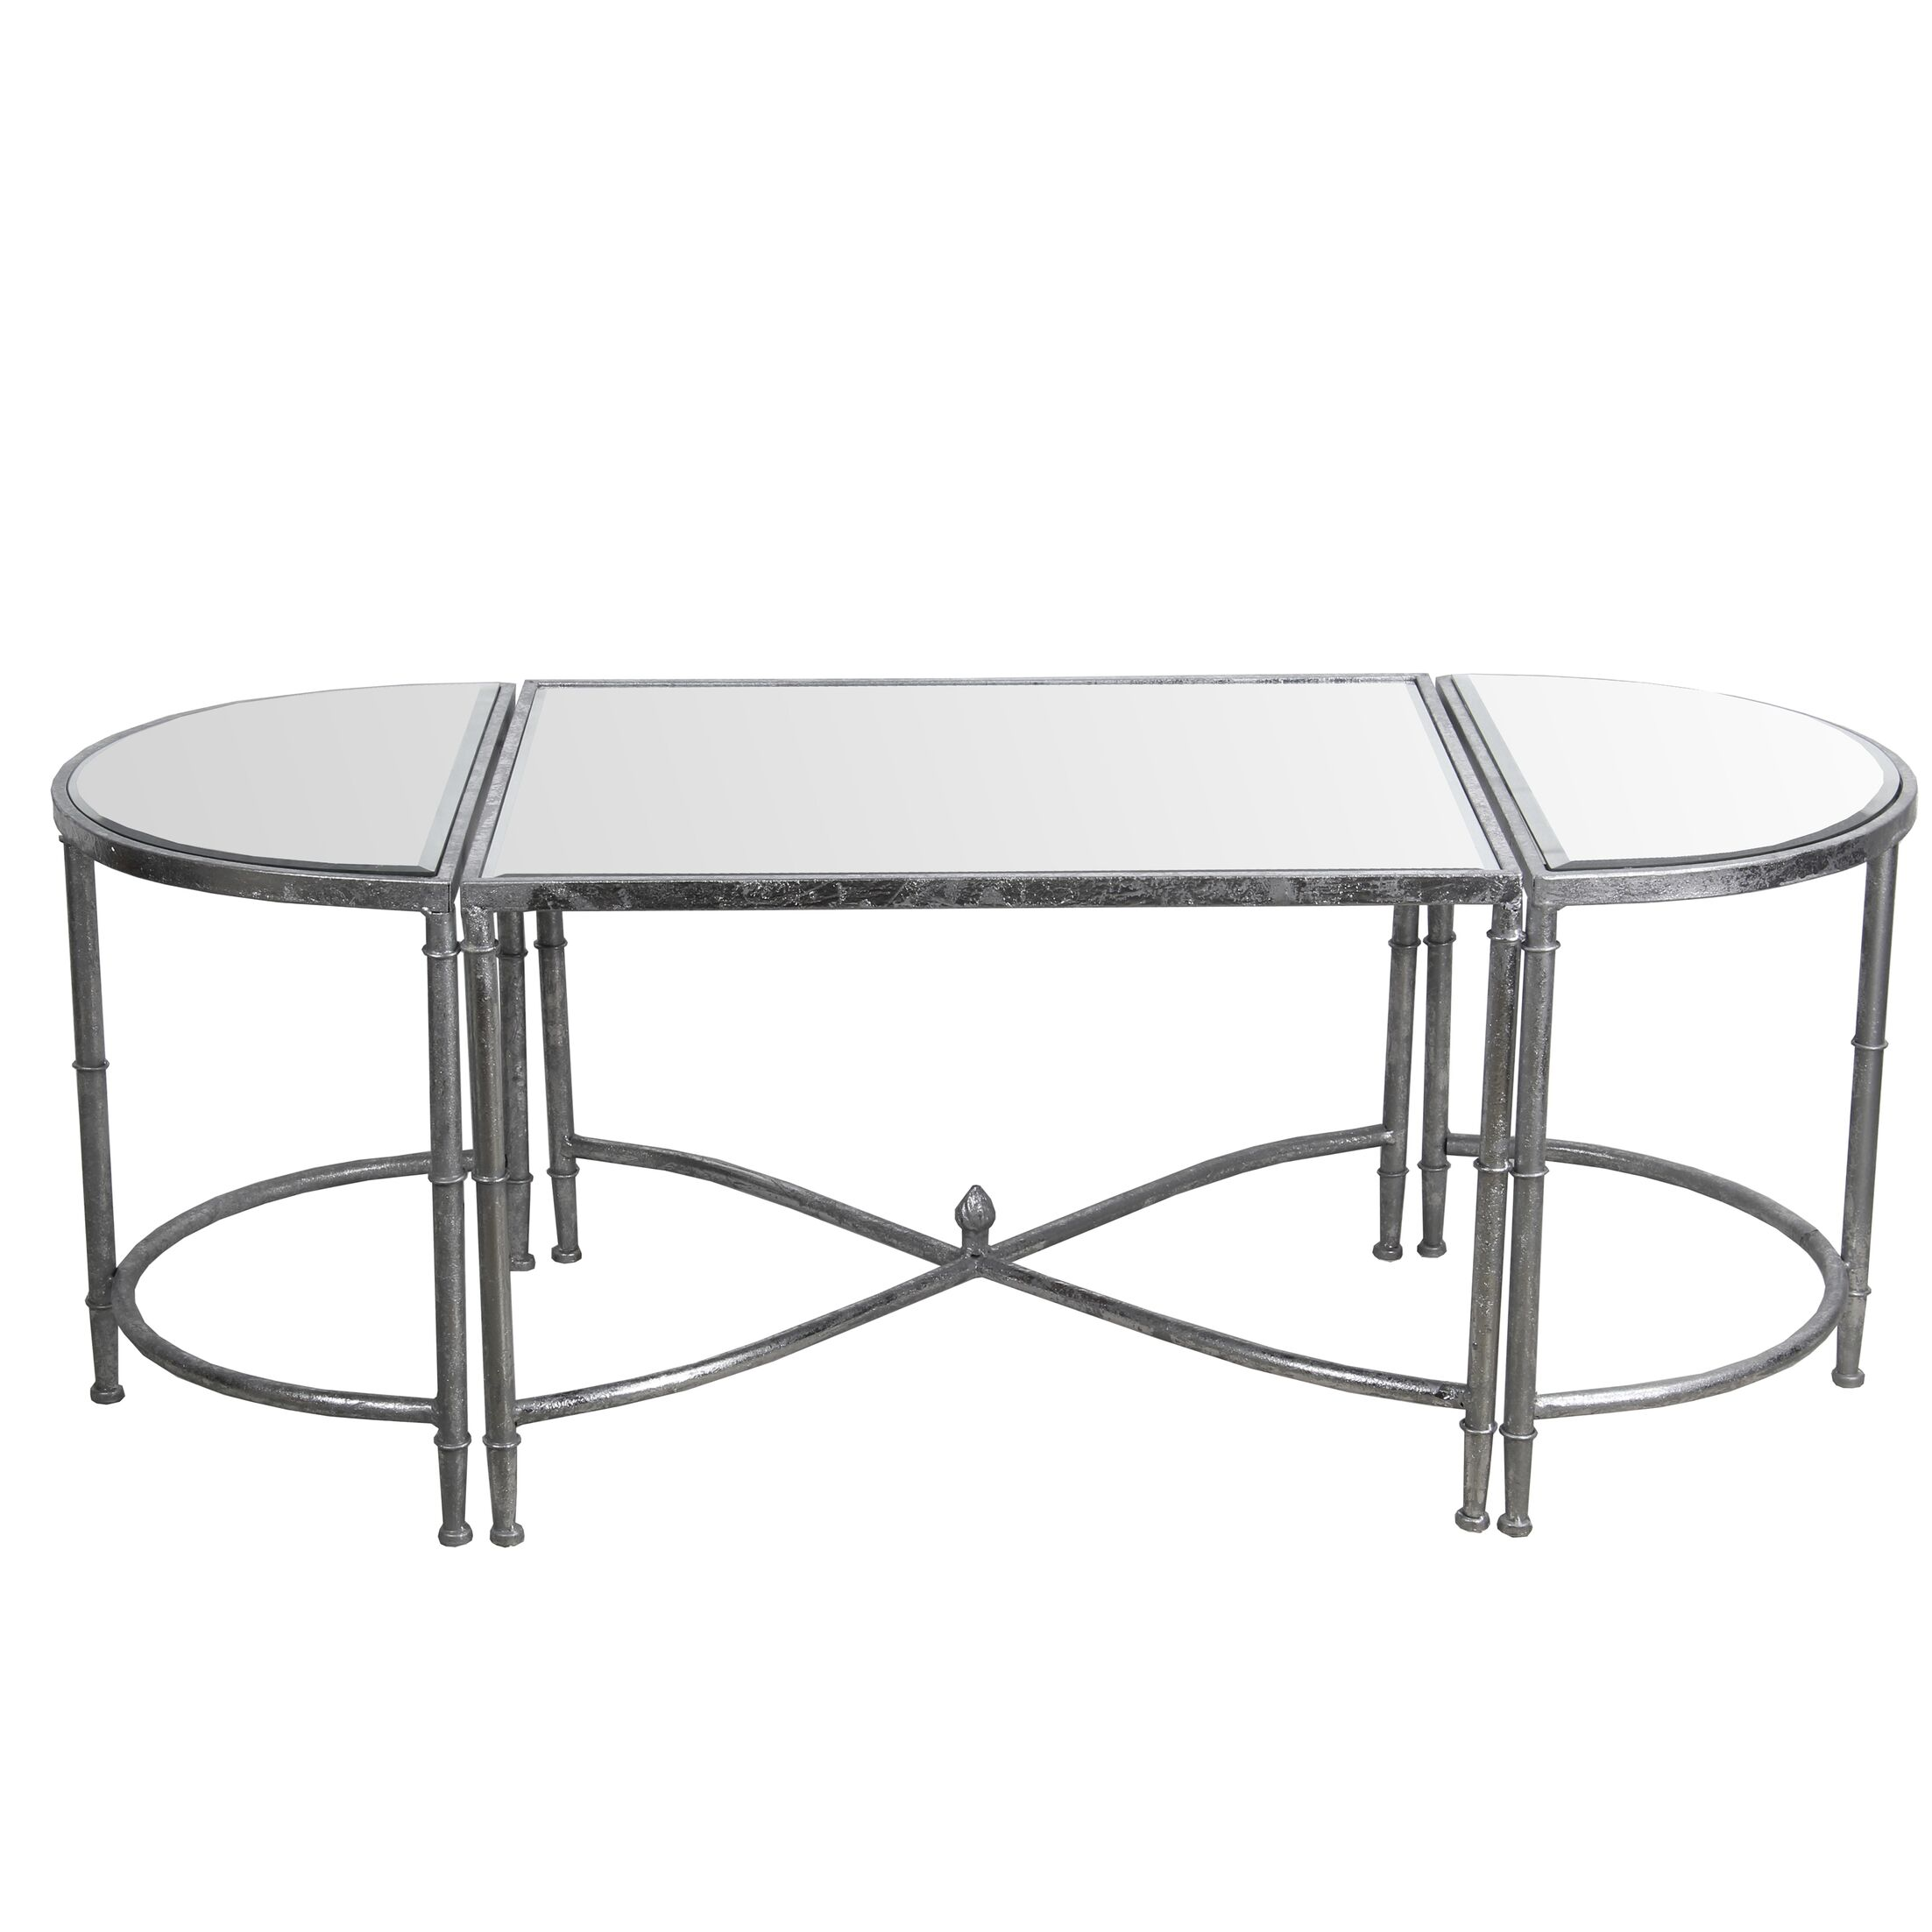 Gofried 3 Piece Coffee Table Set Color: Silver Leaf